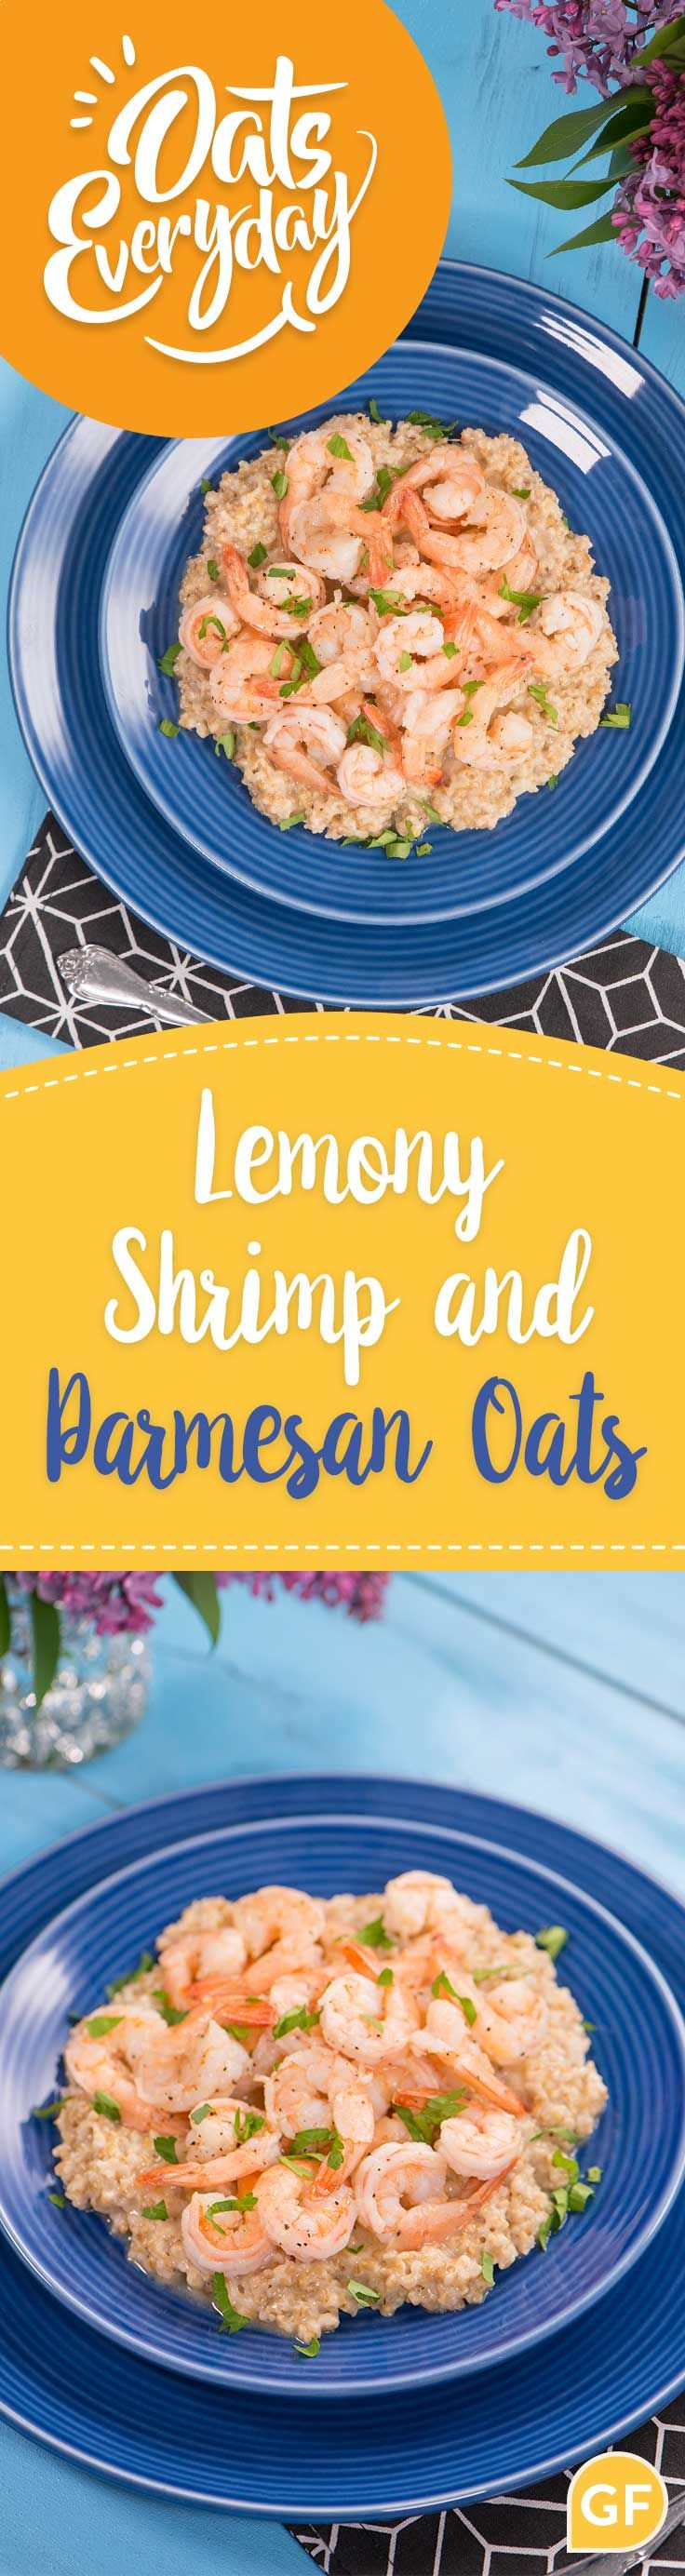 Use steel cut oats for a healthier alternative in your shrimp and grits!